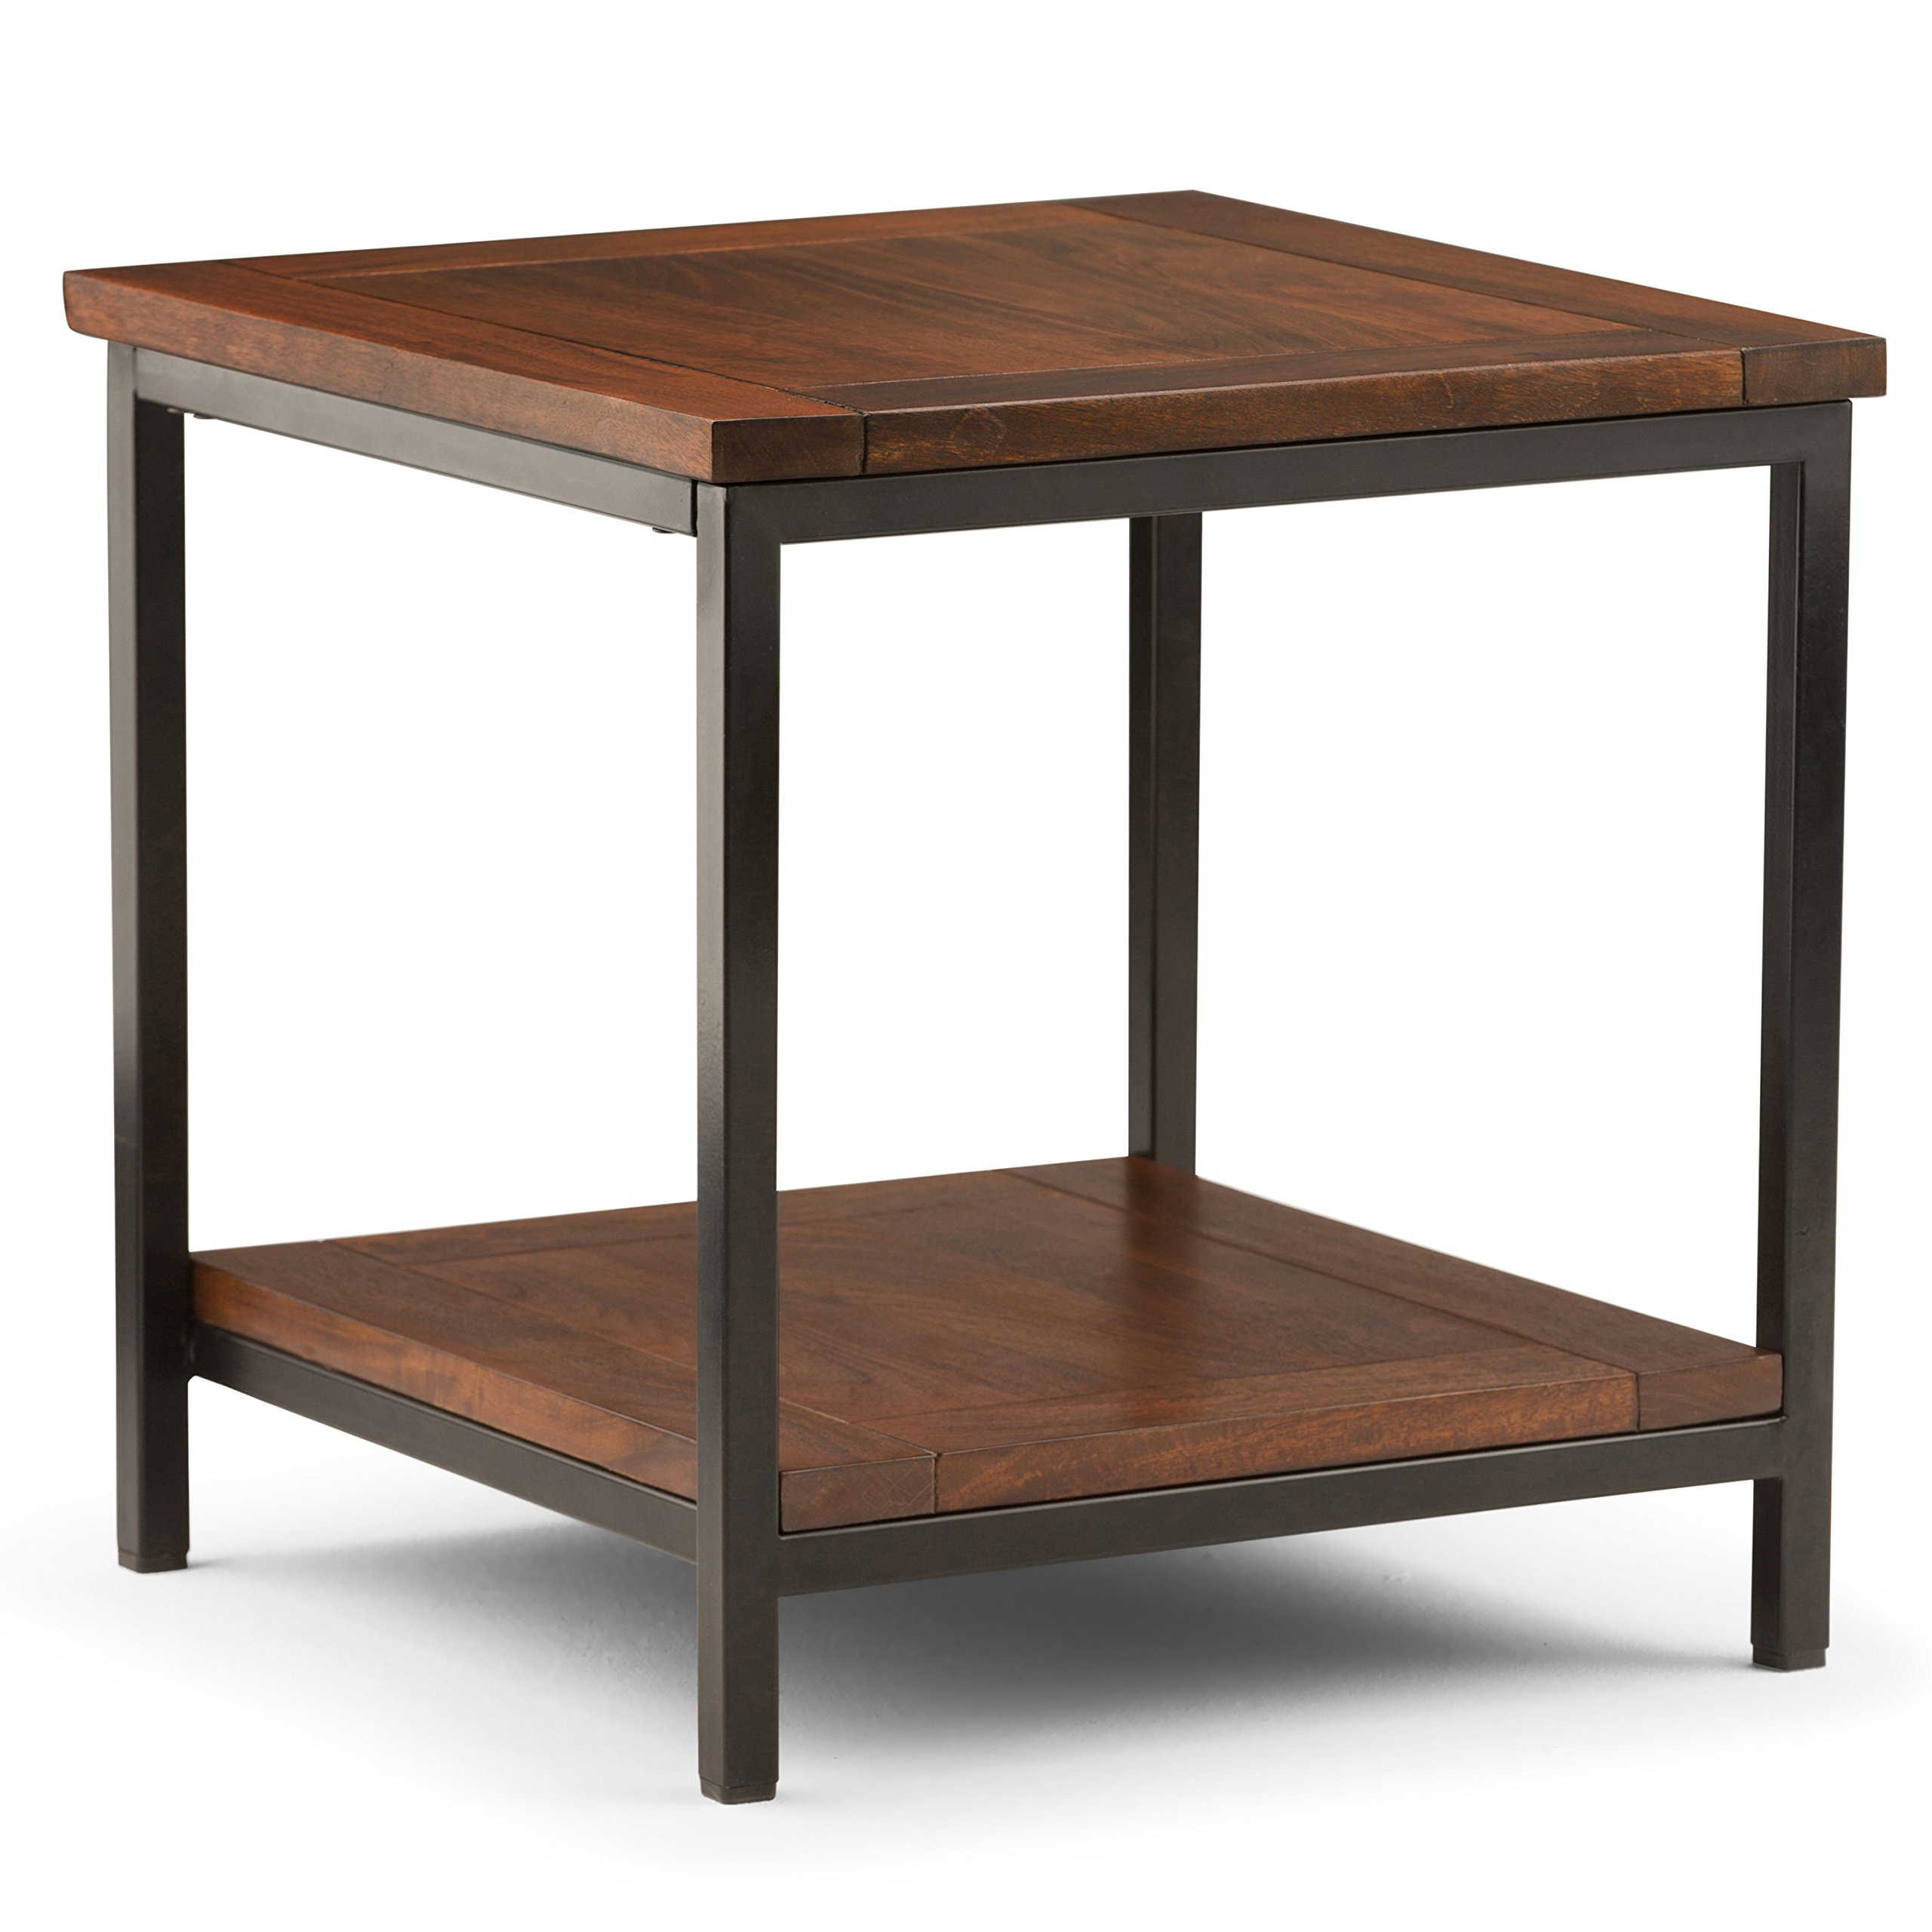 Simpli Home 3AXCSKY-03 Skyler Solid Mango Wood 22 inch Wide Square Modern Industrial End Side Table in Dark Cognac Brown by Simpli Home